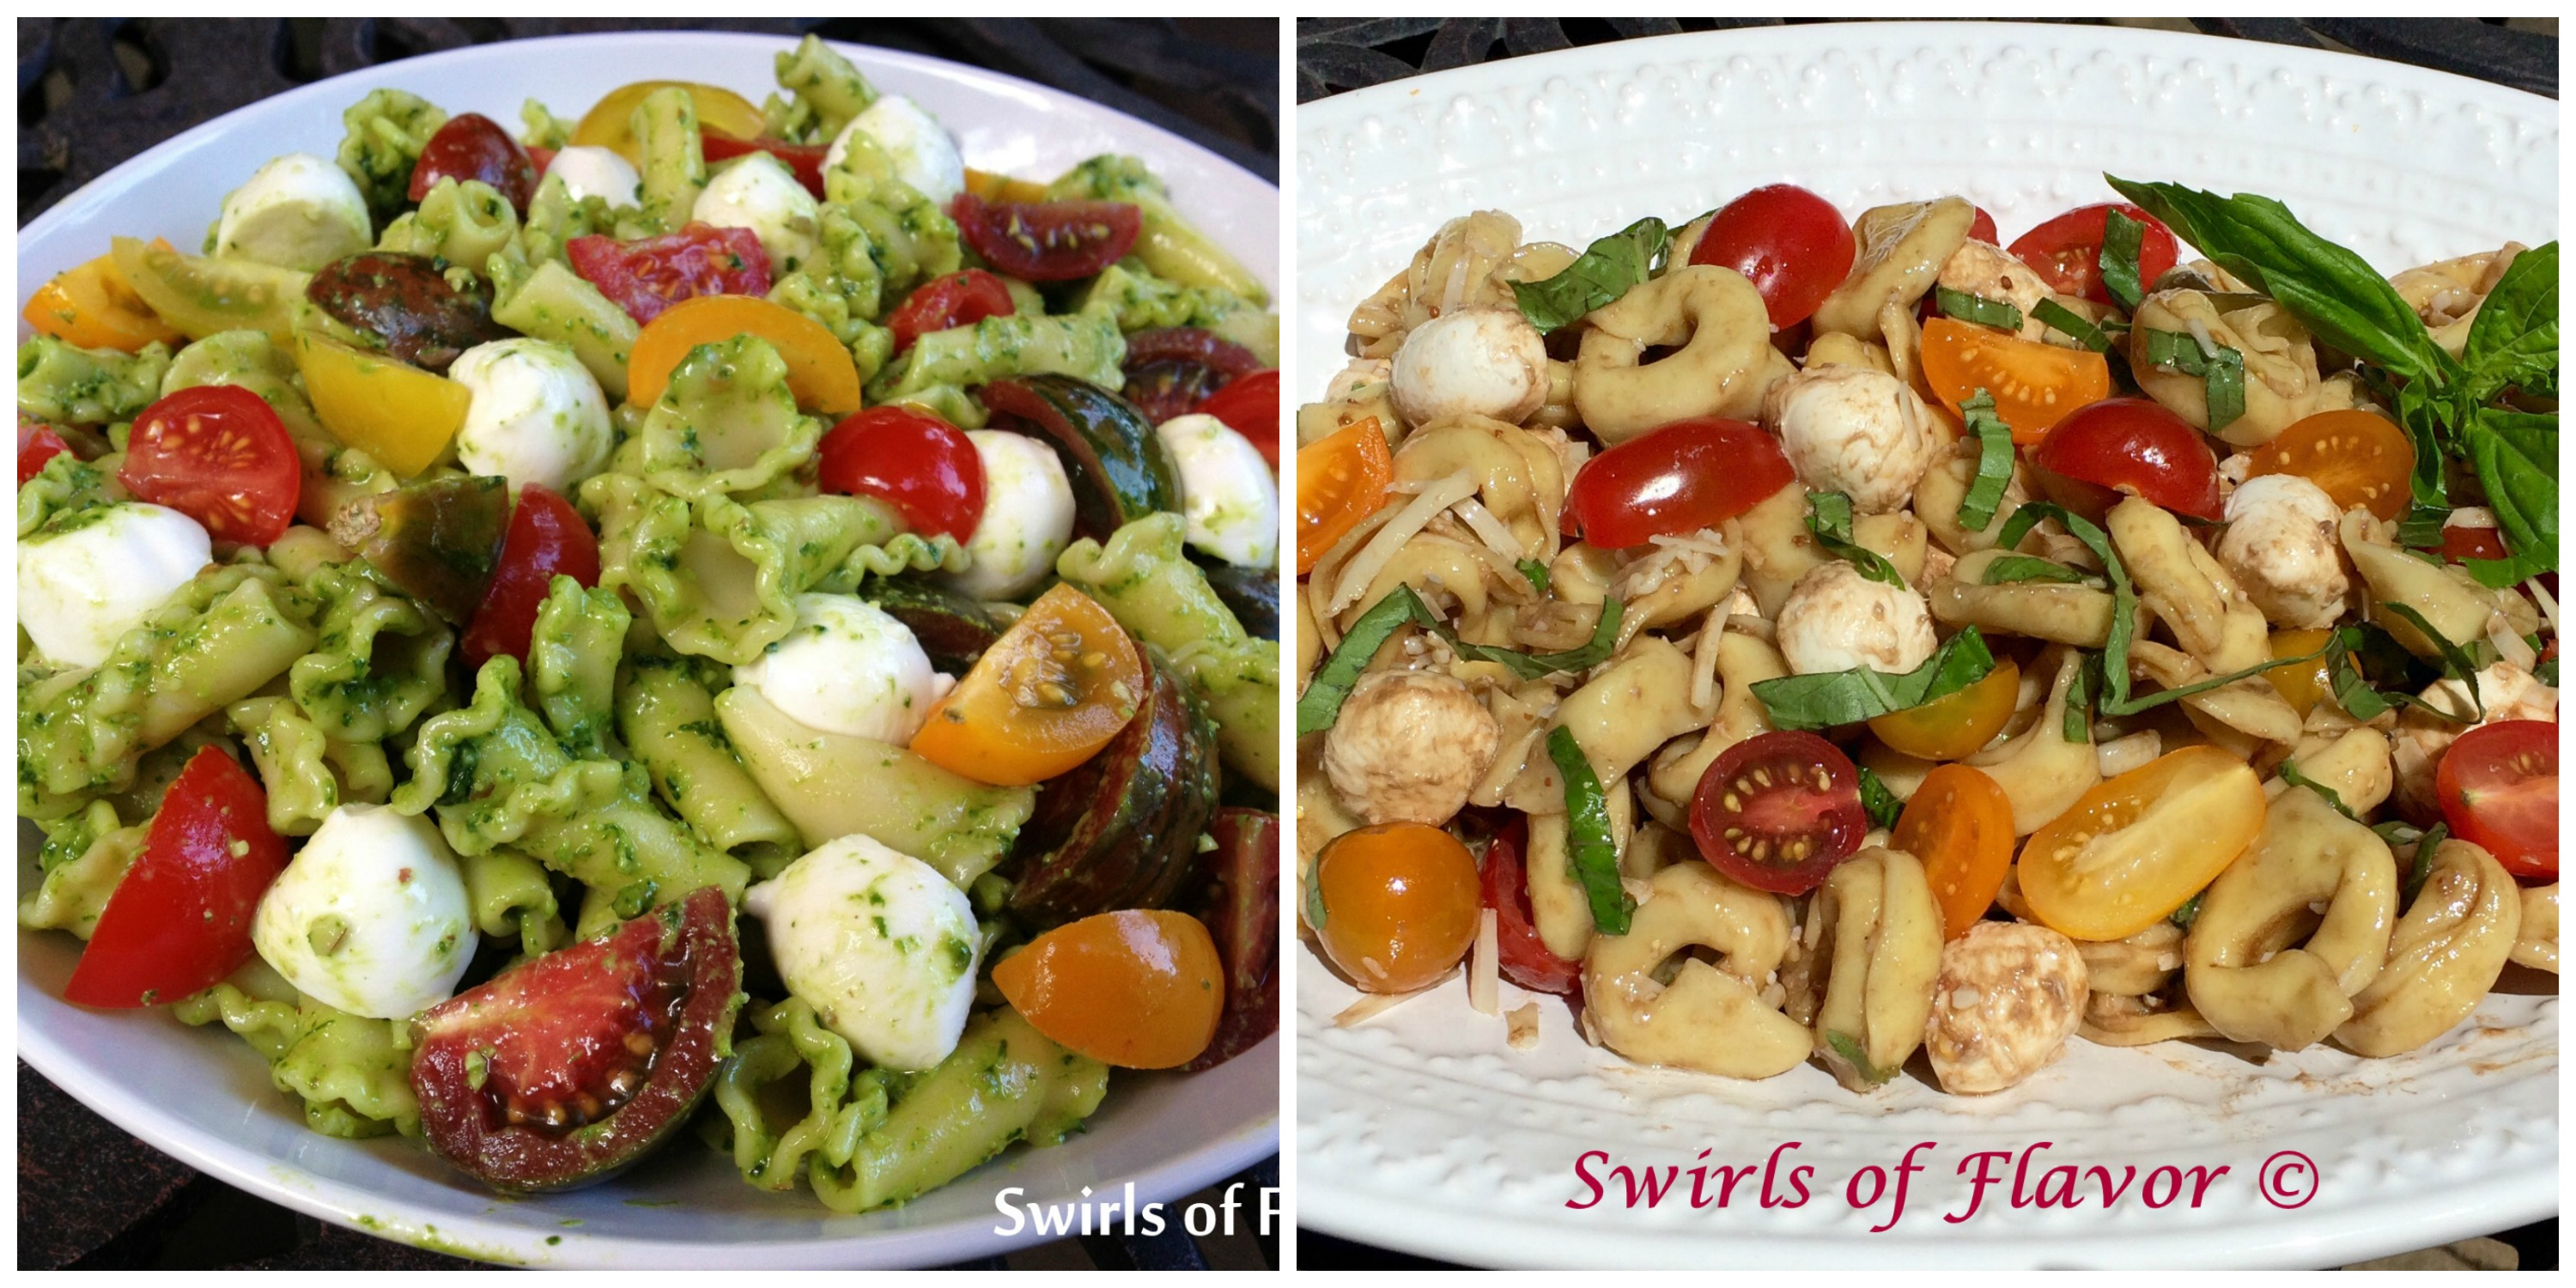 Pesto Pasta Salad and Balsamic Pasta Salad